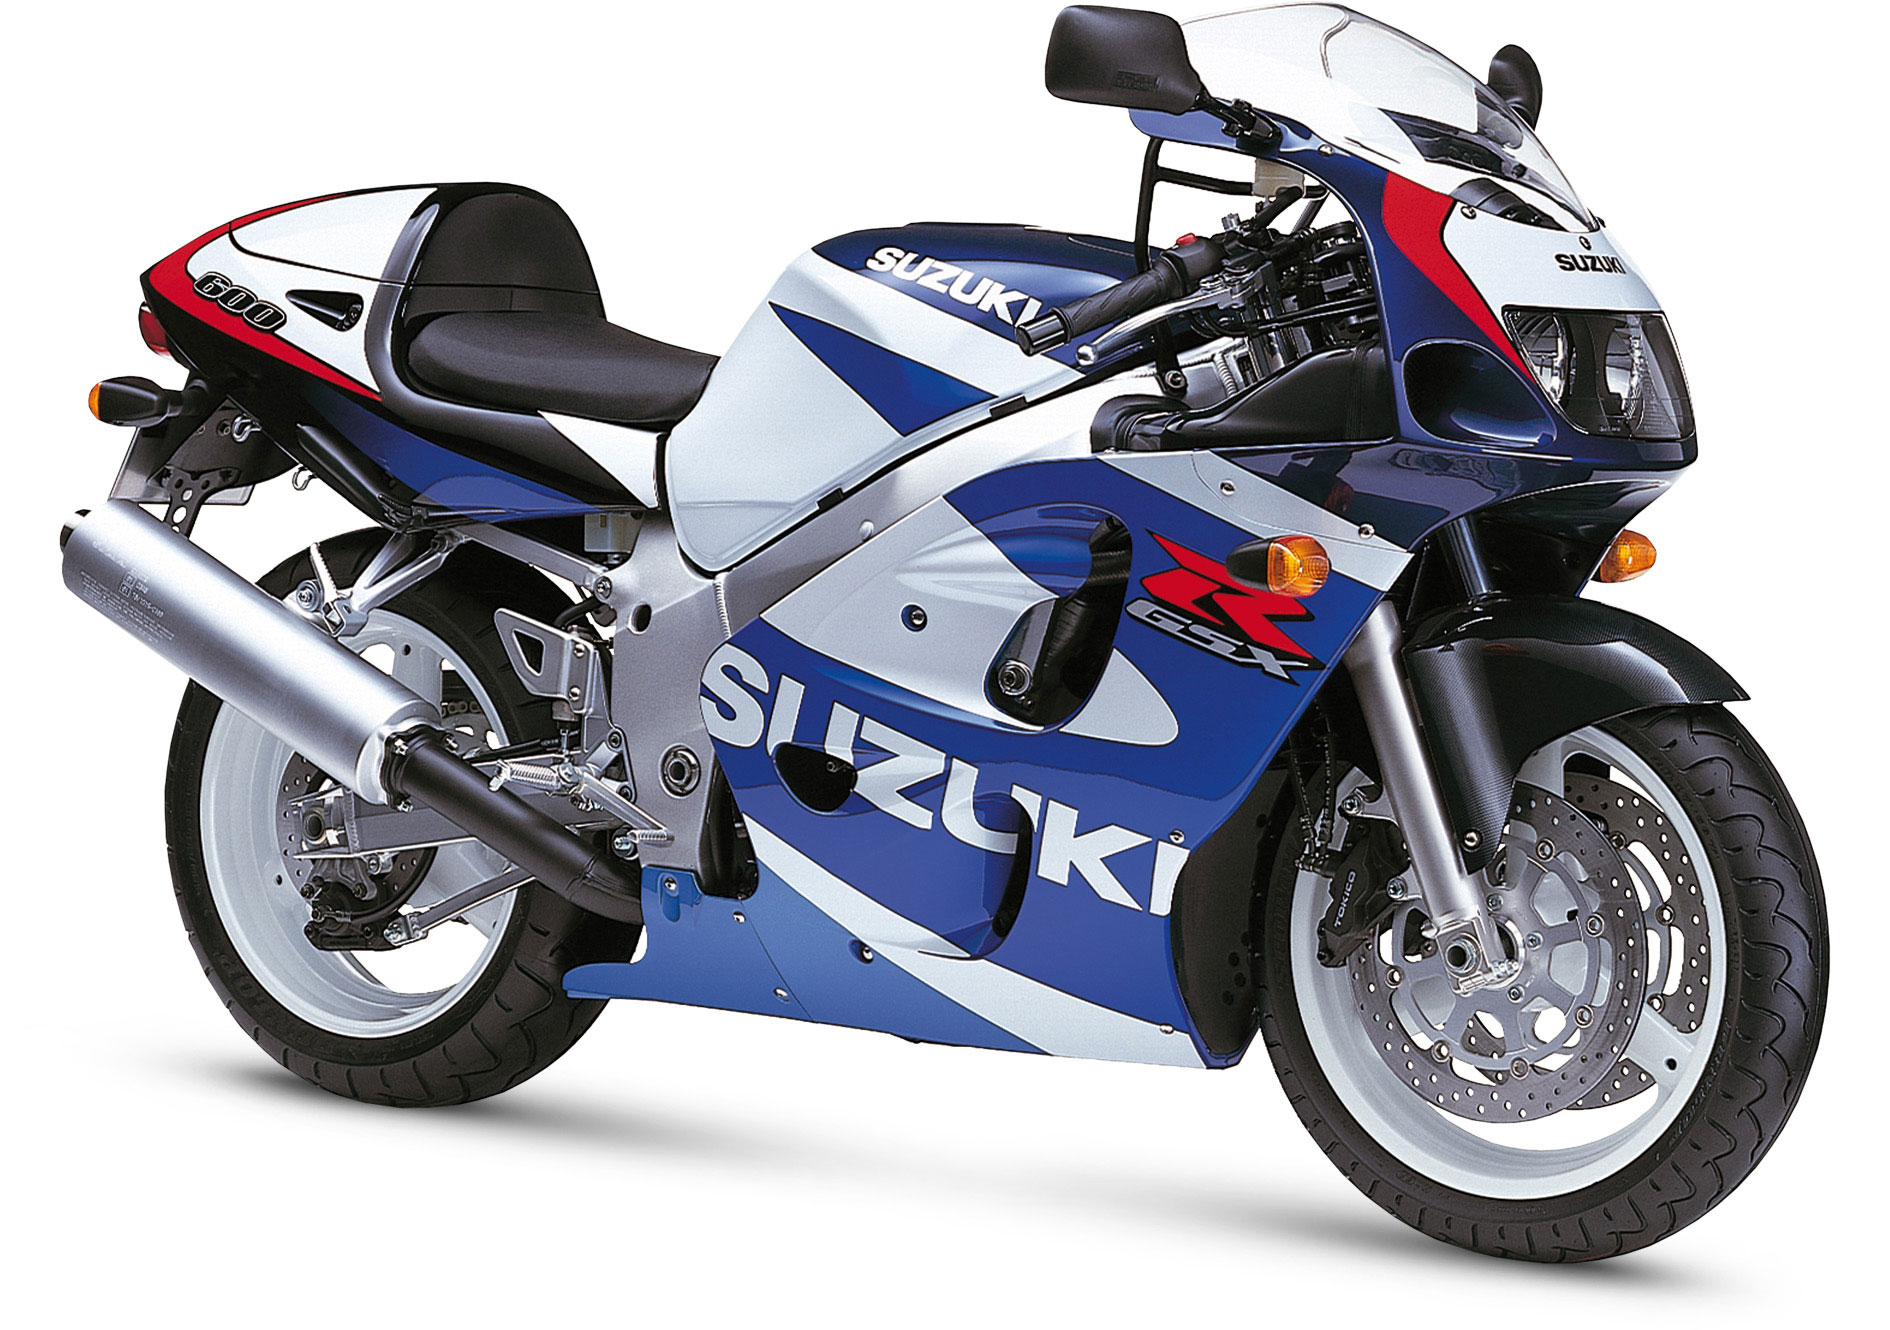 1997 suzuki gsx r 600 pics specs and information. Black Bedroom Furniture Sets. Home Design Ideas